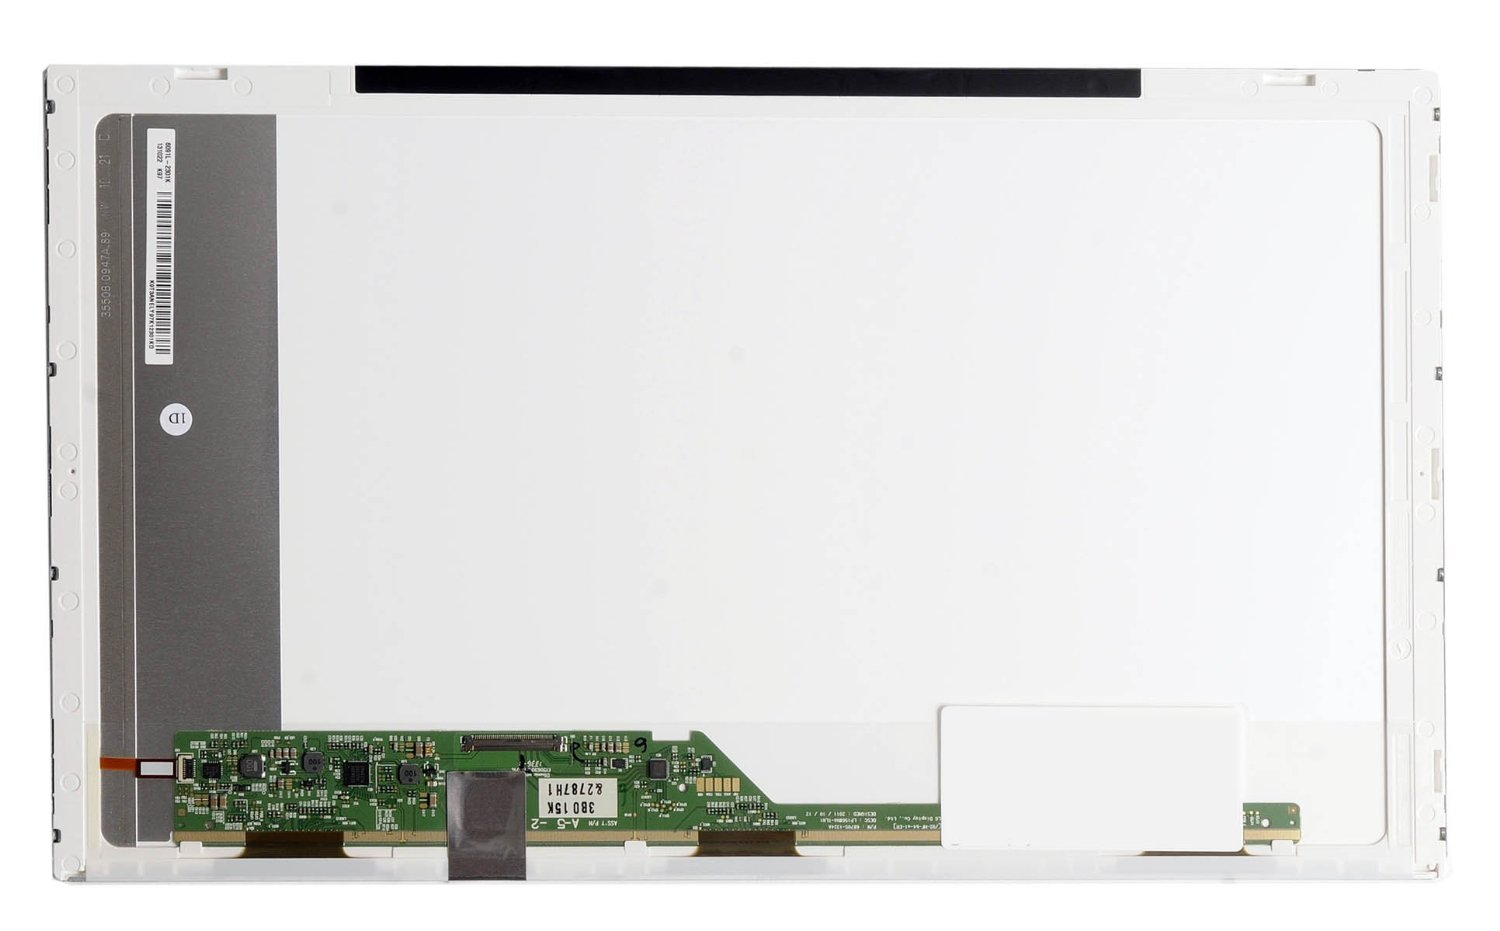 For Toshiba Satellite A665-S5170 & A665-S5186  NEW 15.6 HD LED LCD Screen , Satellite A665 Series Panel Display клавиатура topon top 77206 для toshiba satellite a660 a665 qosmio x770 x775 series black